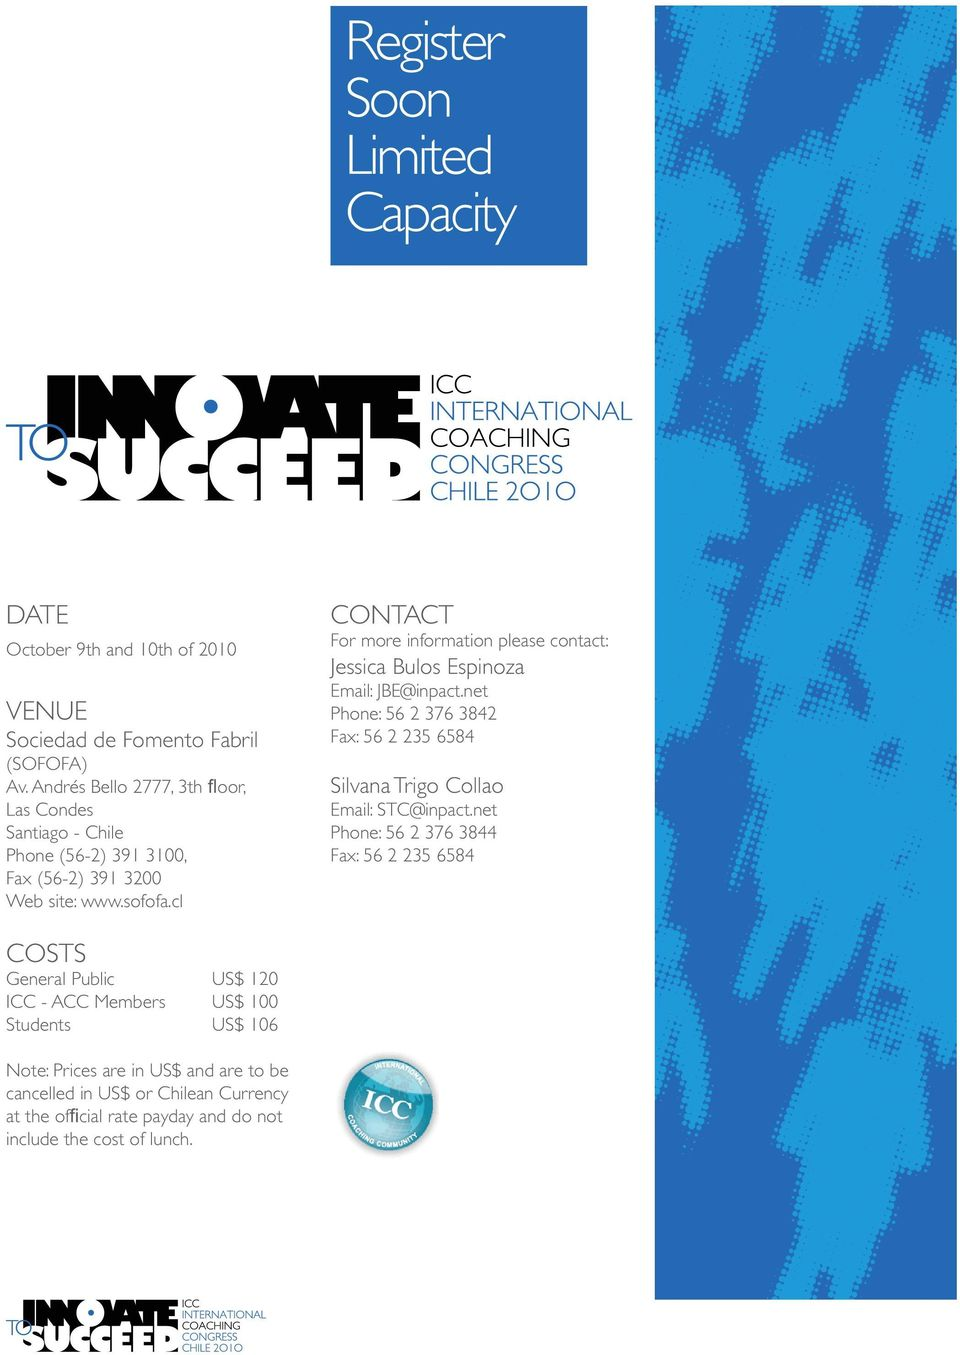 cl CONTACT For more information please contact: Jessica Bulos Espinoza Email: JBE@inpact.